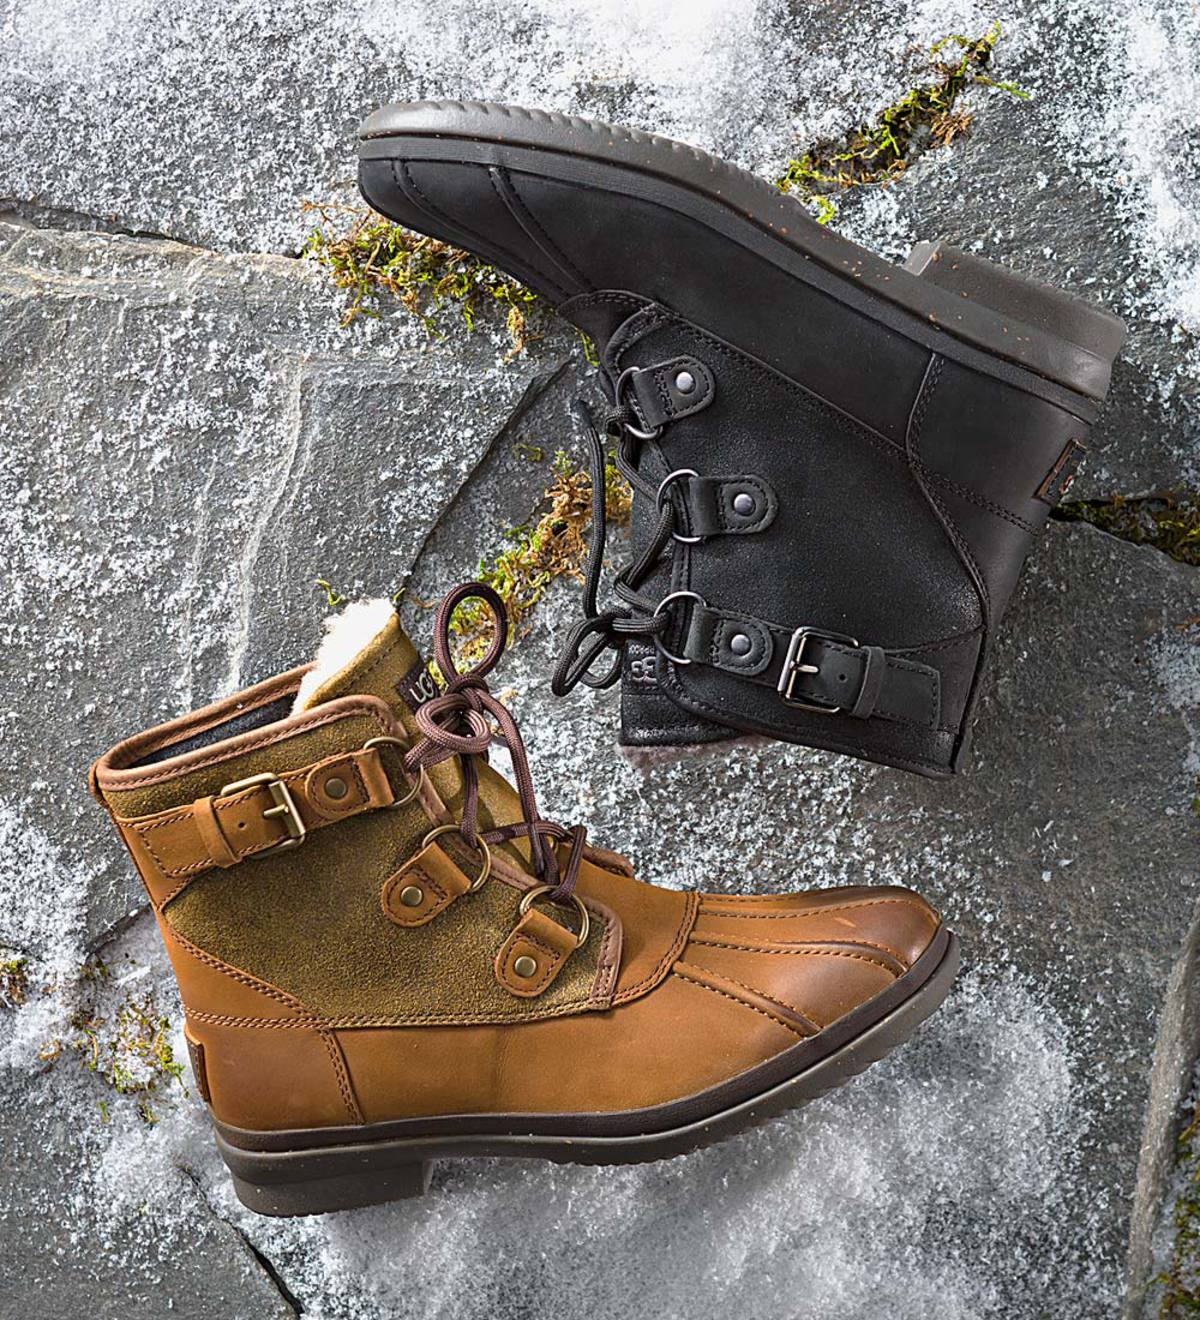 Ugg Women S Cecile Boots Plowhearth